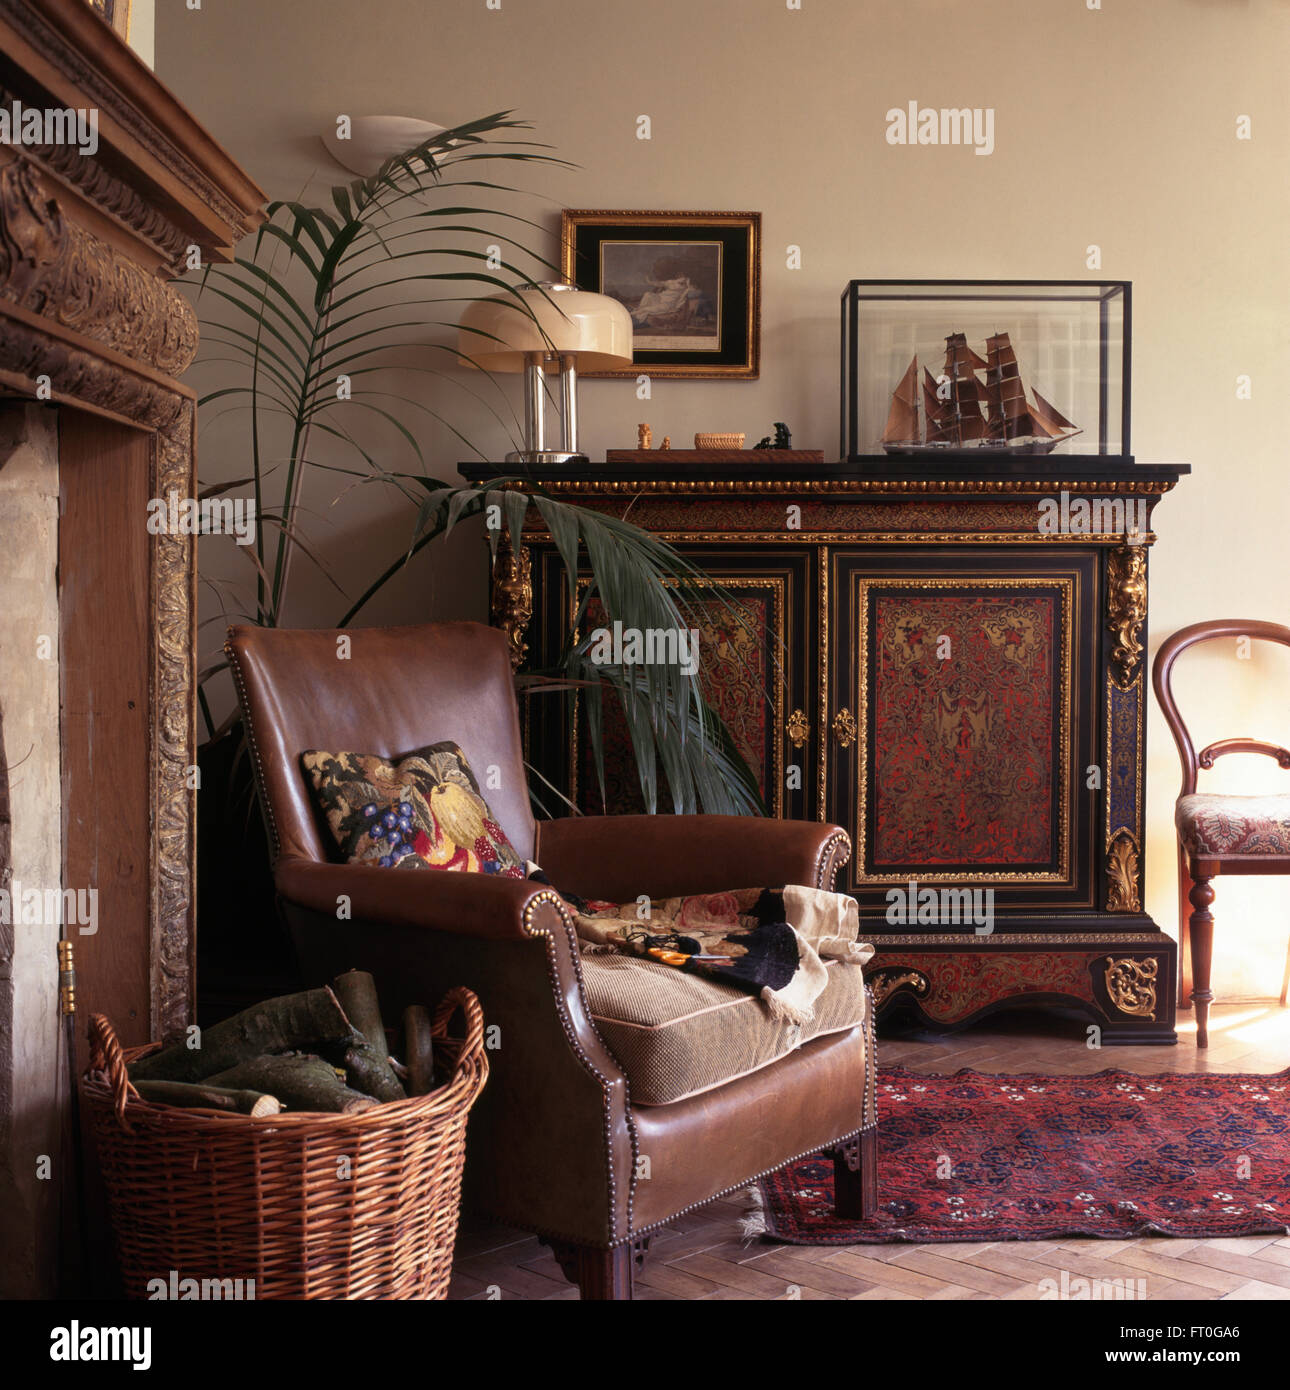 Brown Leather Chair And Ornate Antique Cupboard In Old Fashioned Living Room    Stock Image